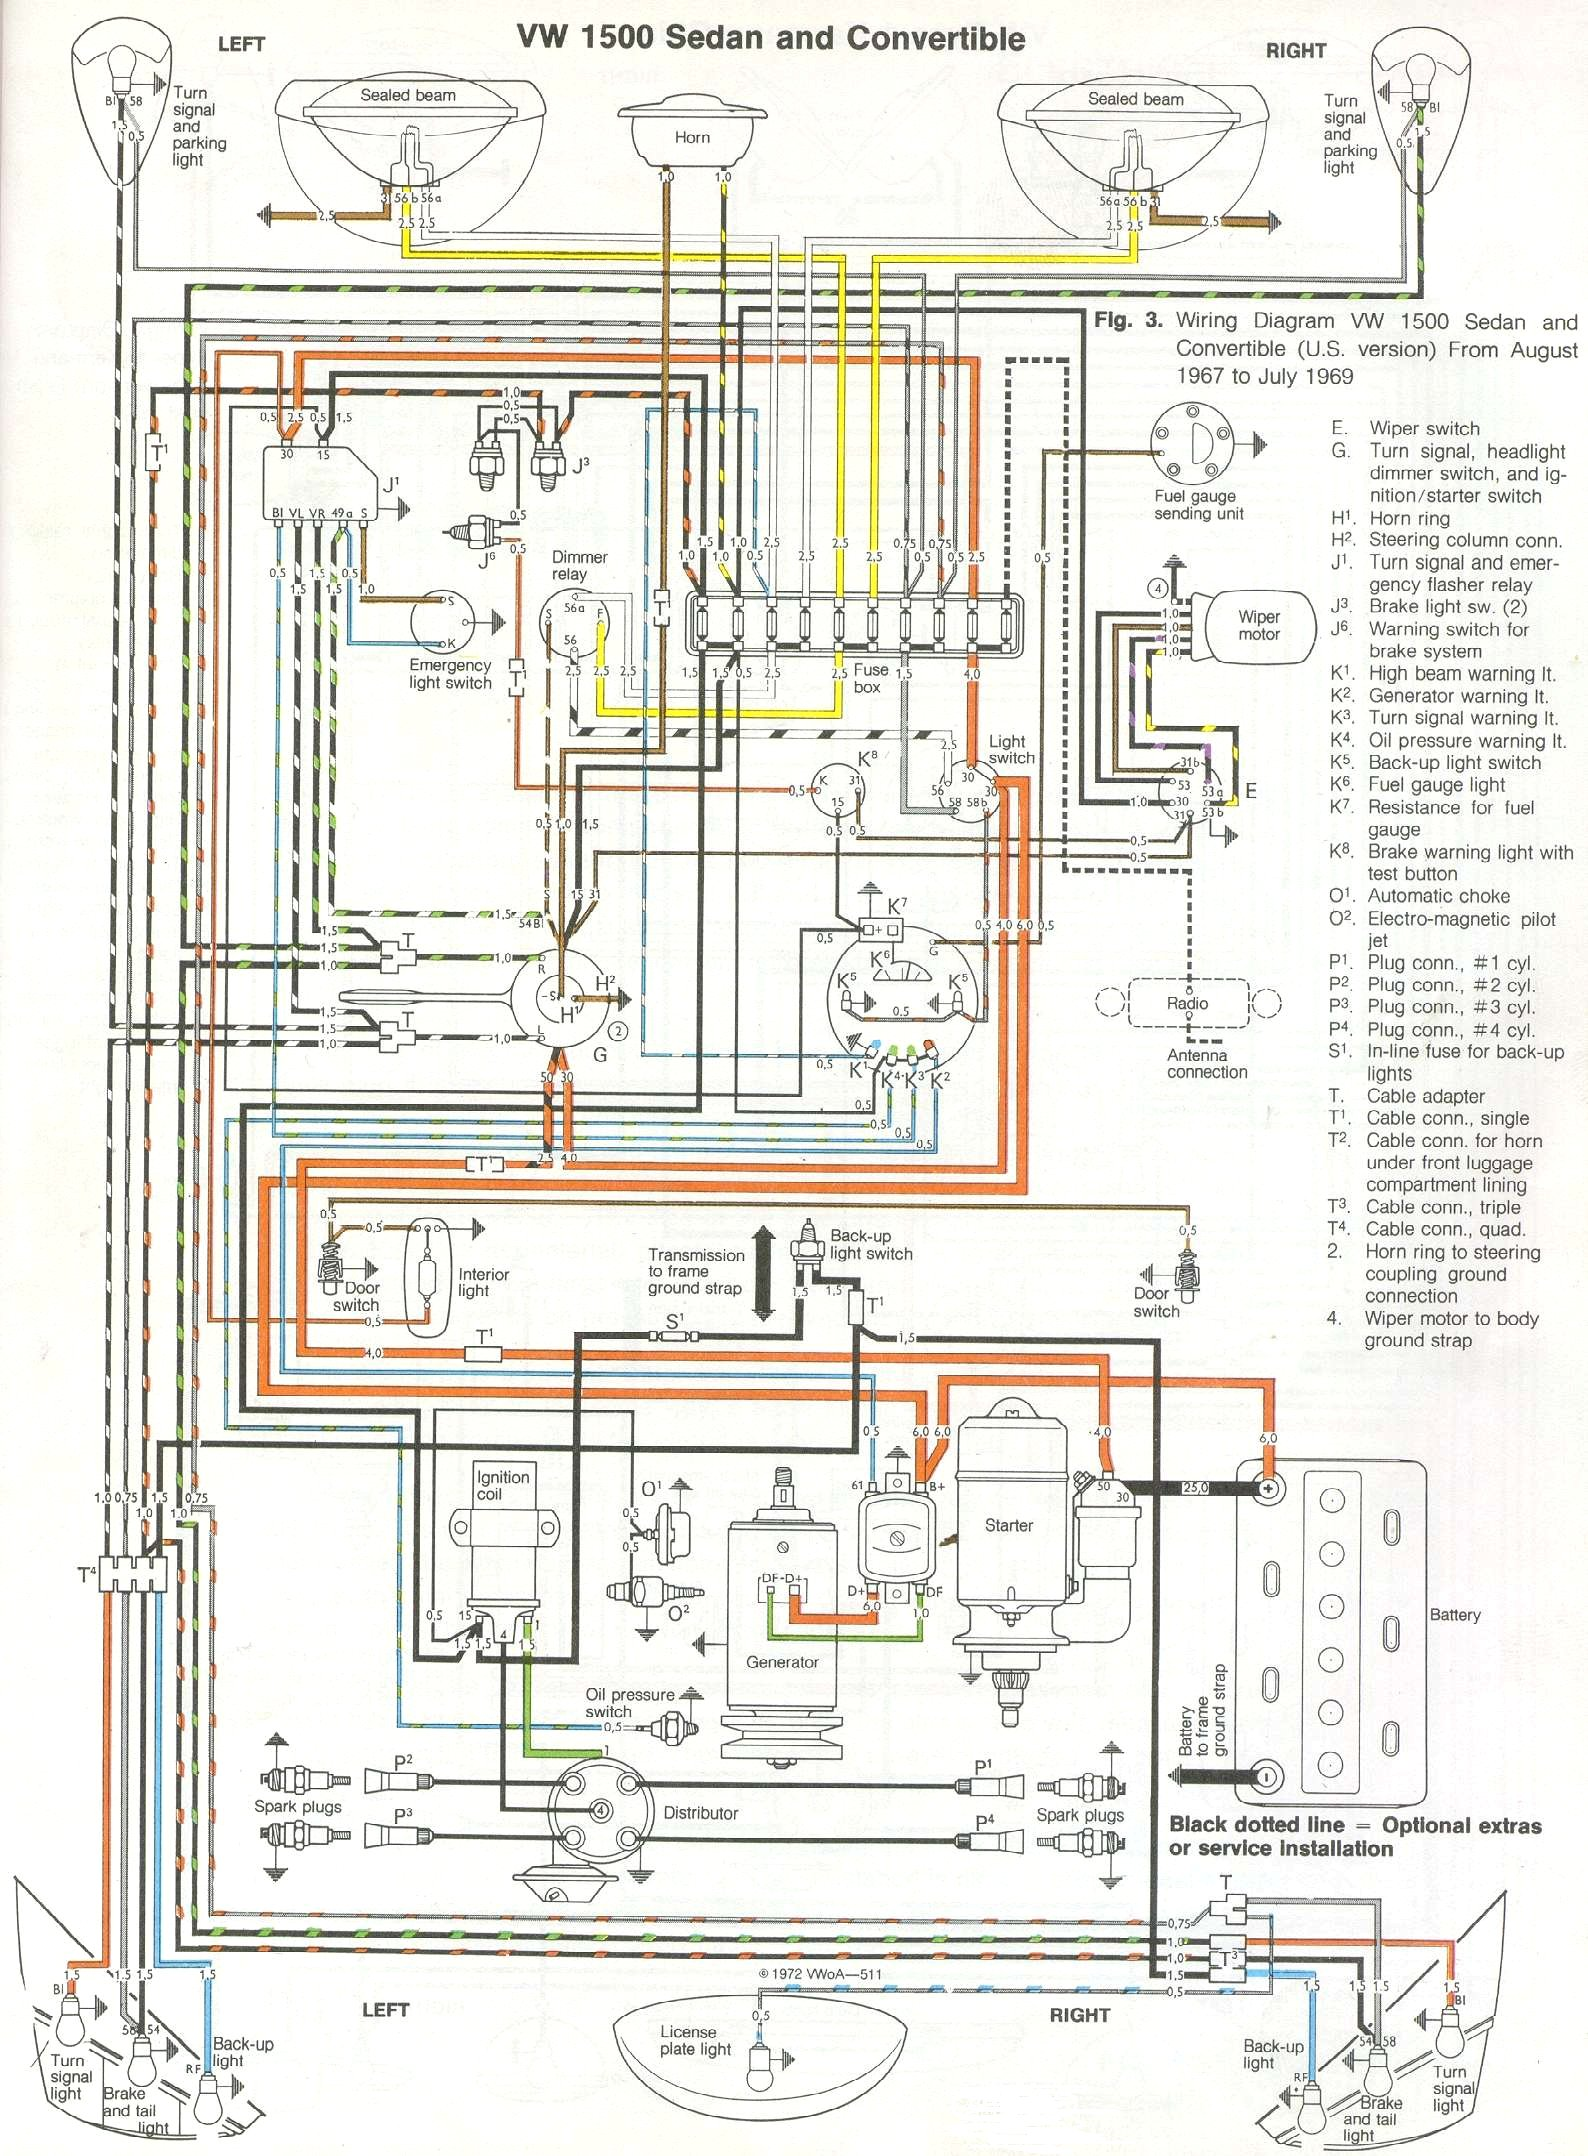 bug_6869 1968 69 beetle wiring diagram (usa) thegoldenbug com 1968 vw beetle wiring diagram at bayanpartner.co